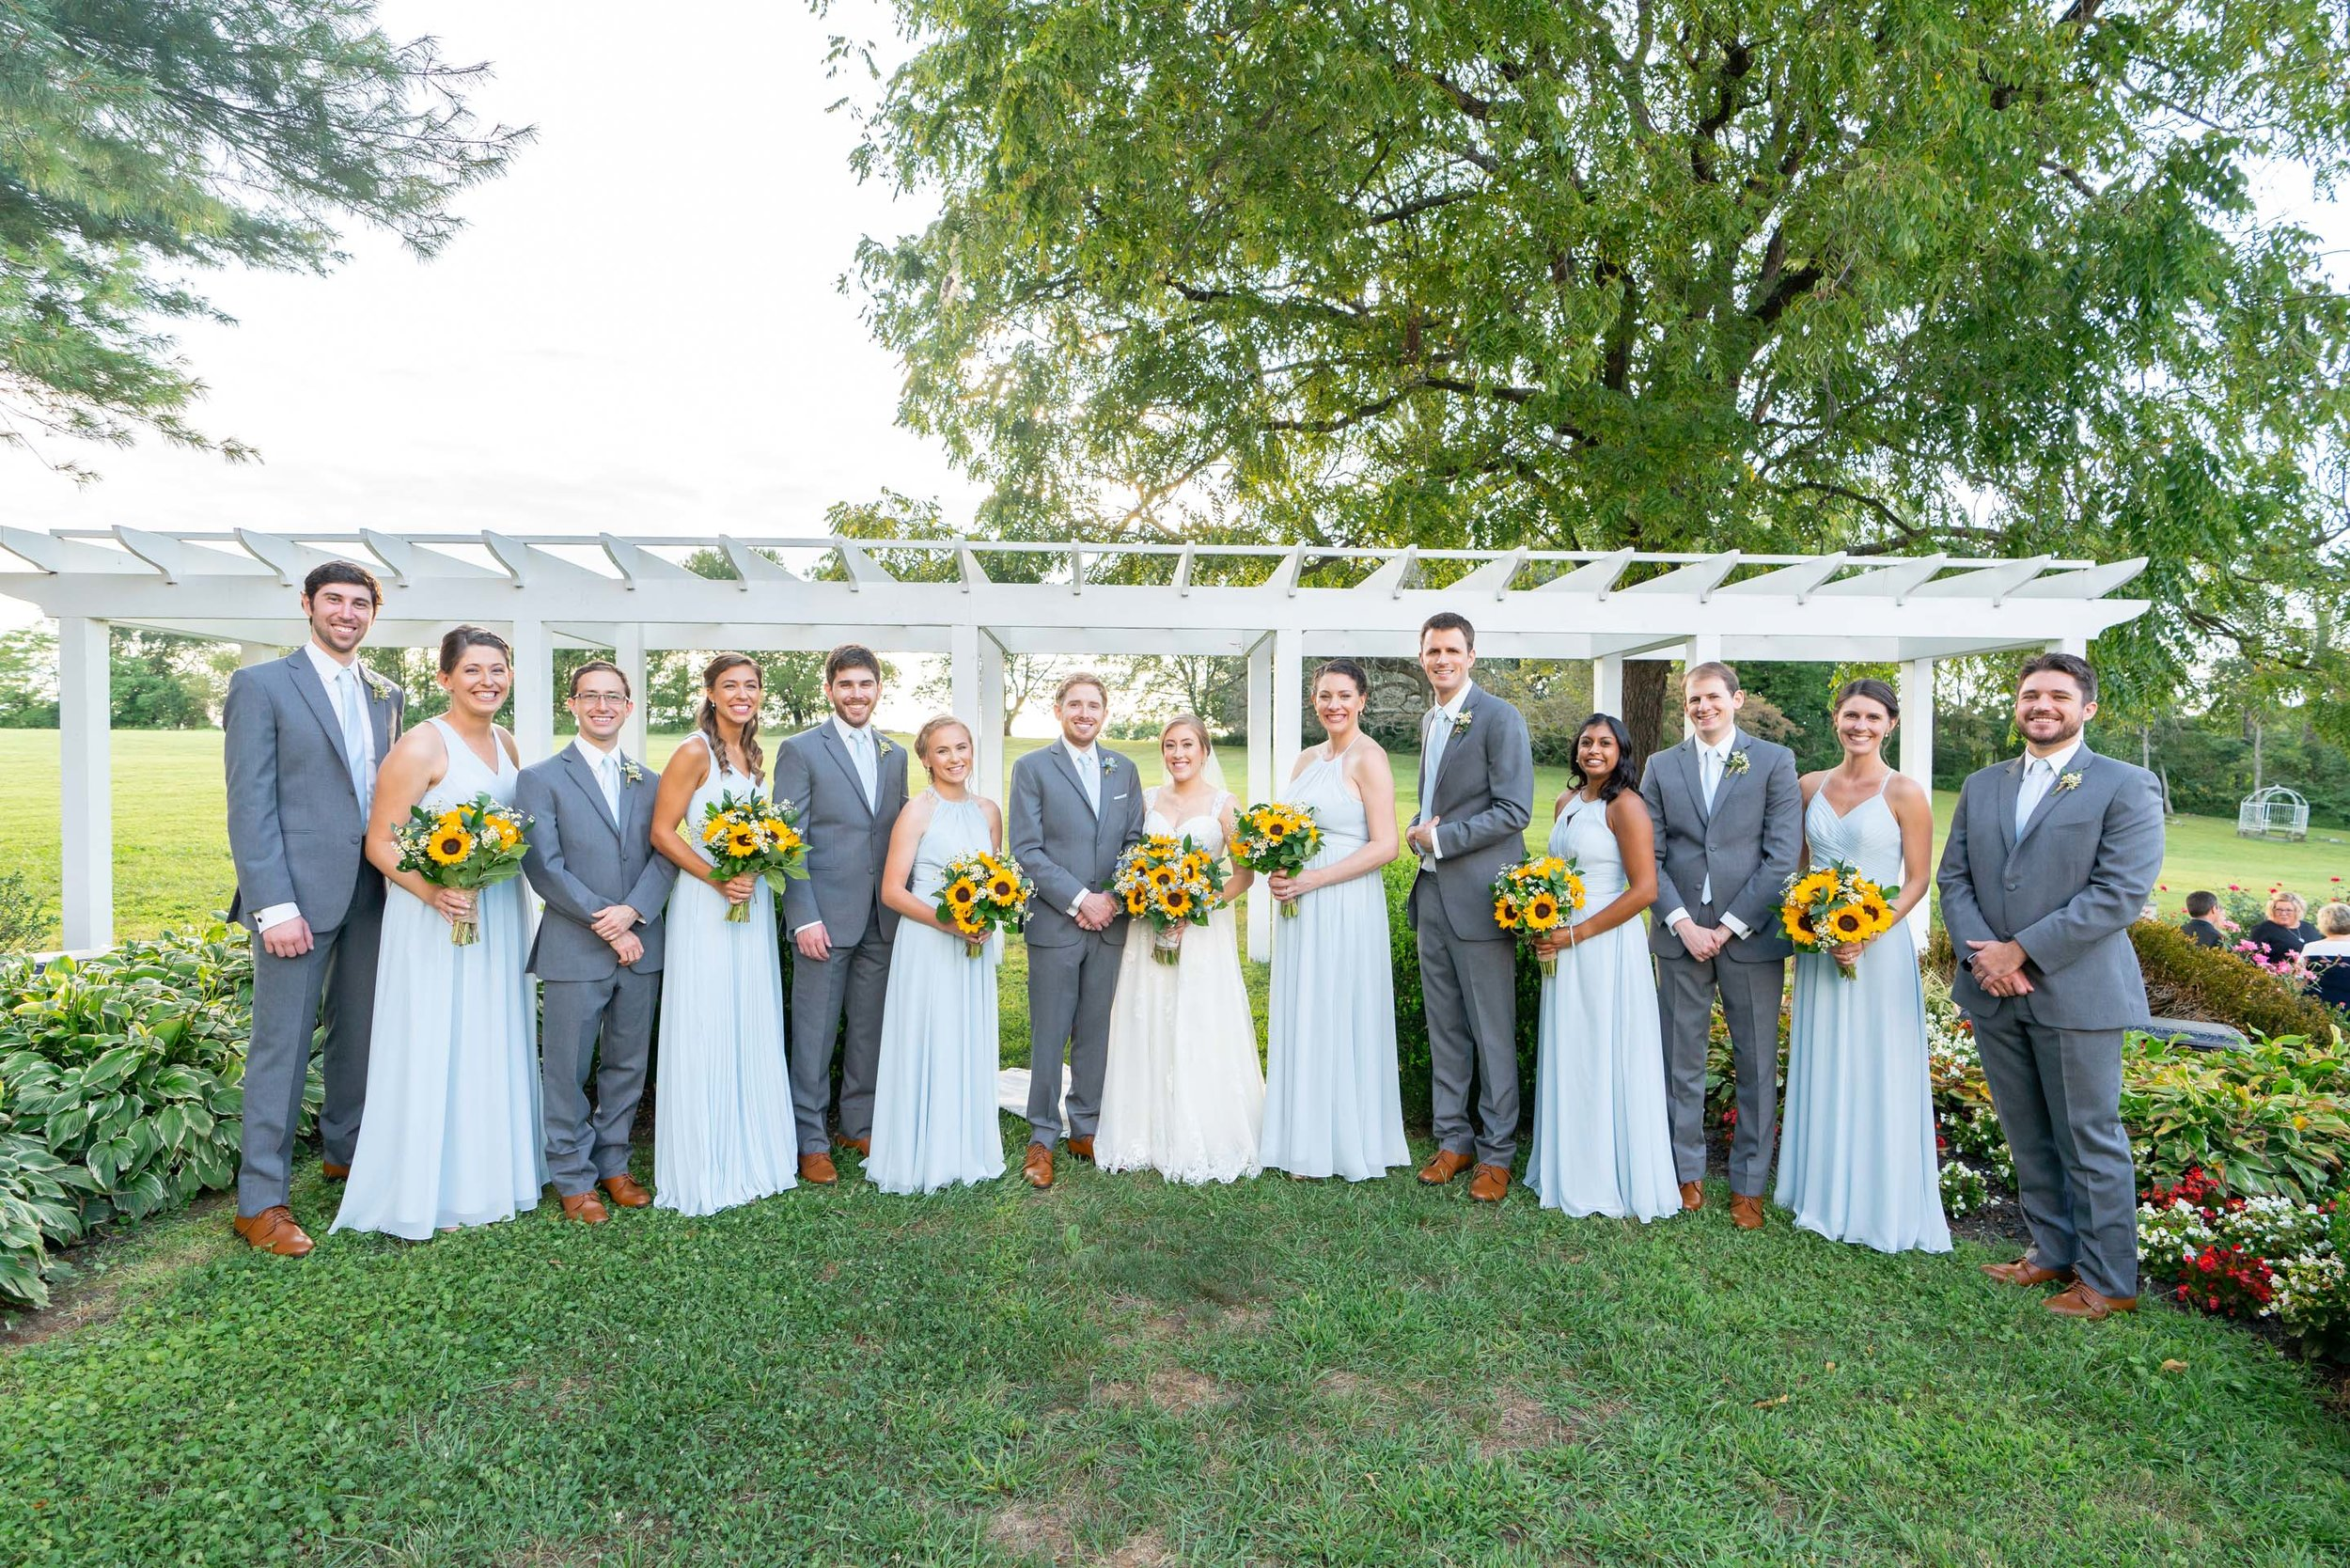 Bridal party with bridesmaids and groomsmen at Stone Manor Country Club